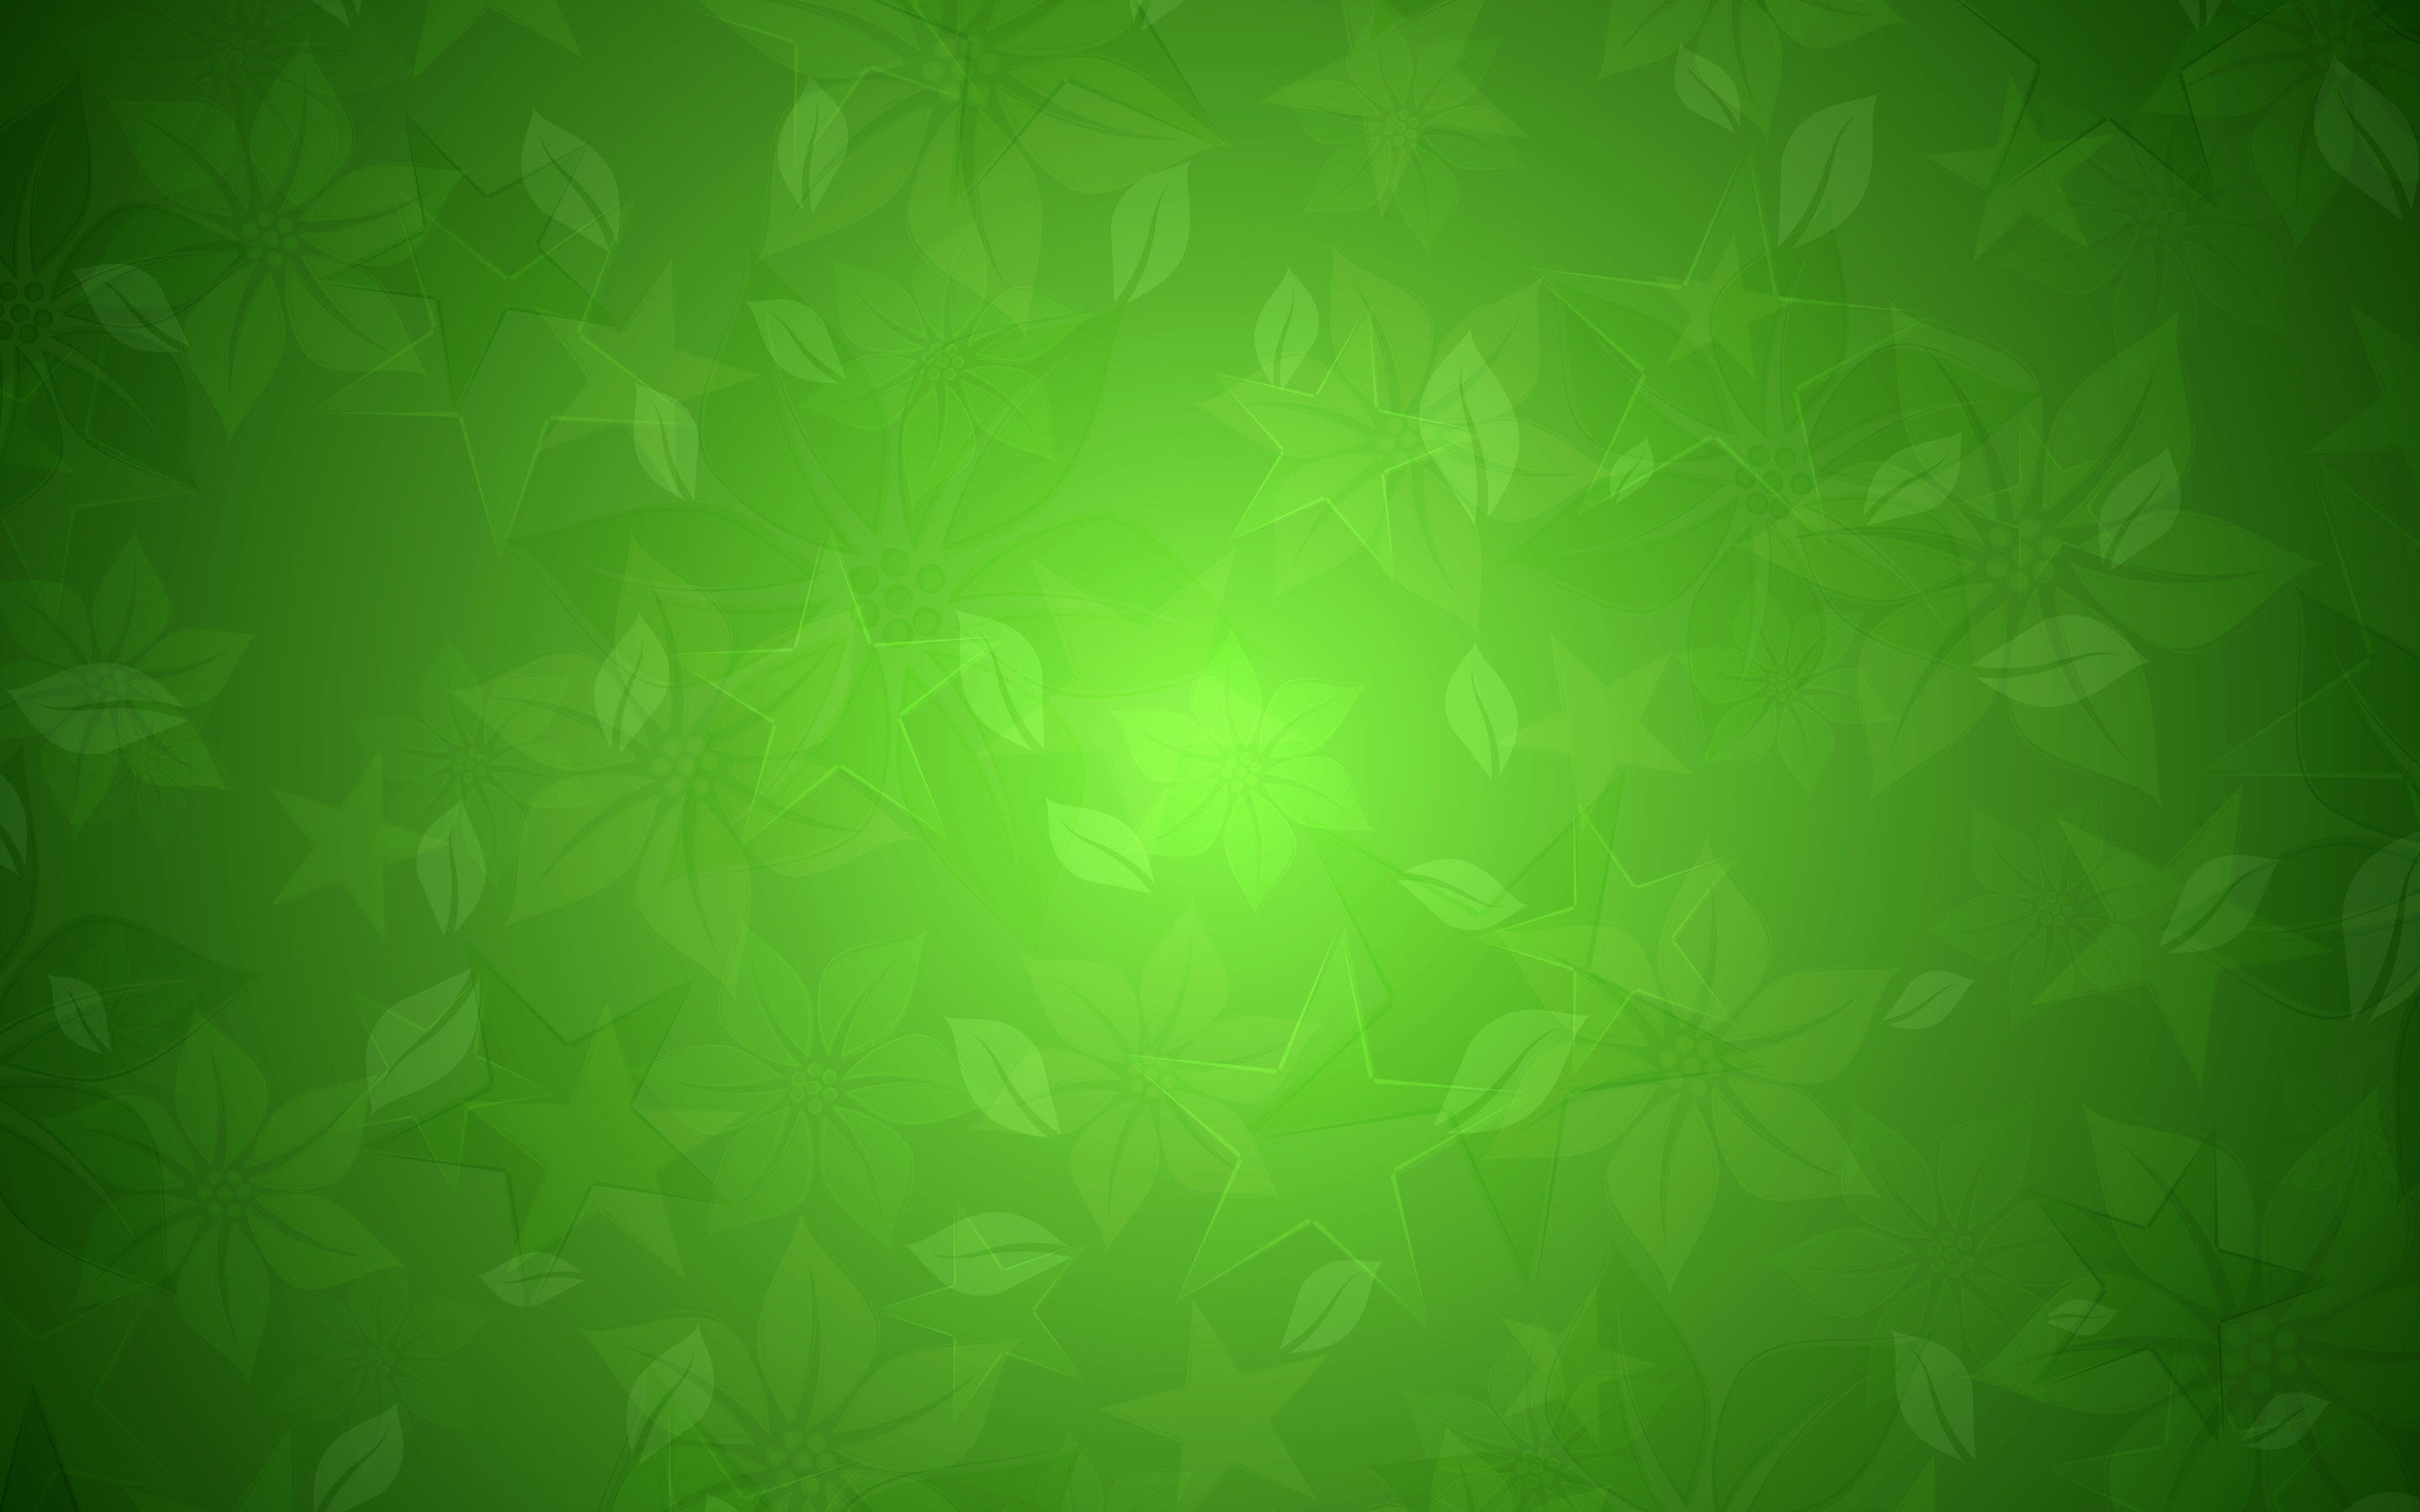 HD Green Floral Texture Wallpaper